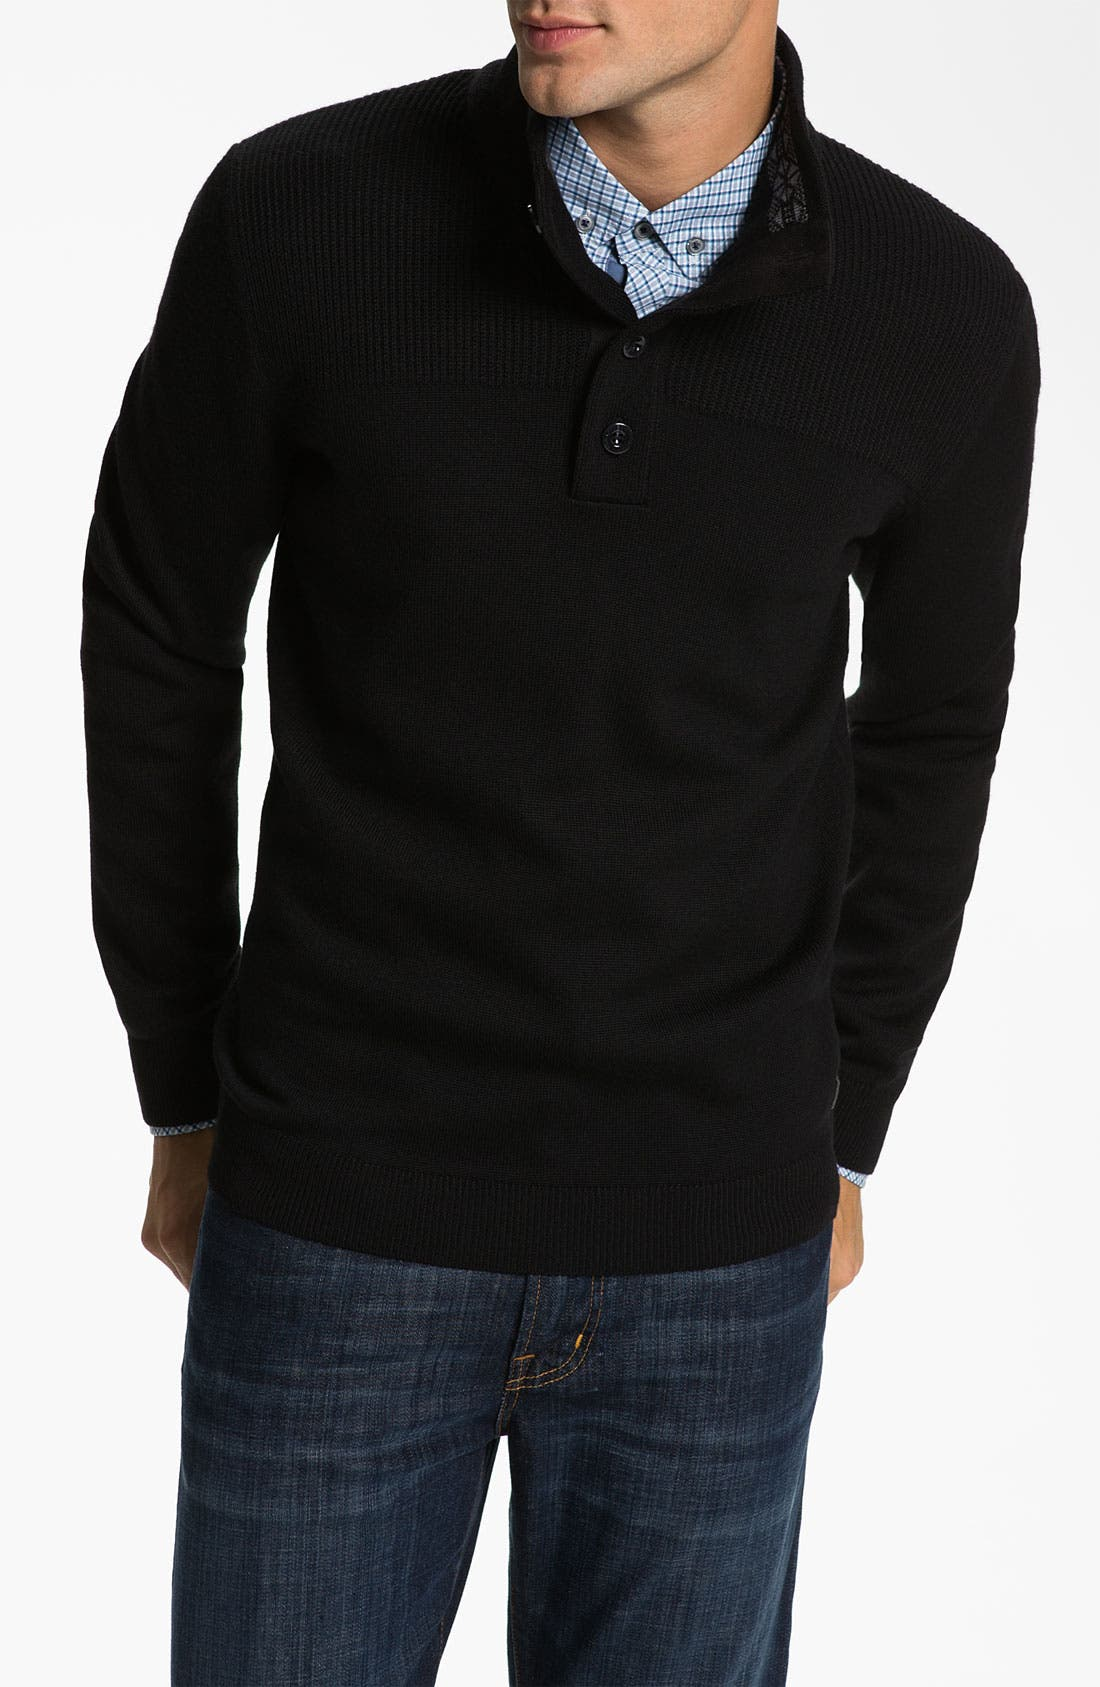 Alternate Image 1 Selected - BOSS Black 'Lancelot' Slim Fit Mock Neck Wool Sweater